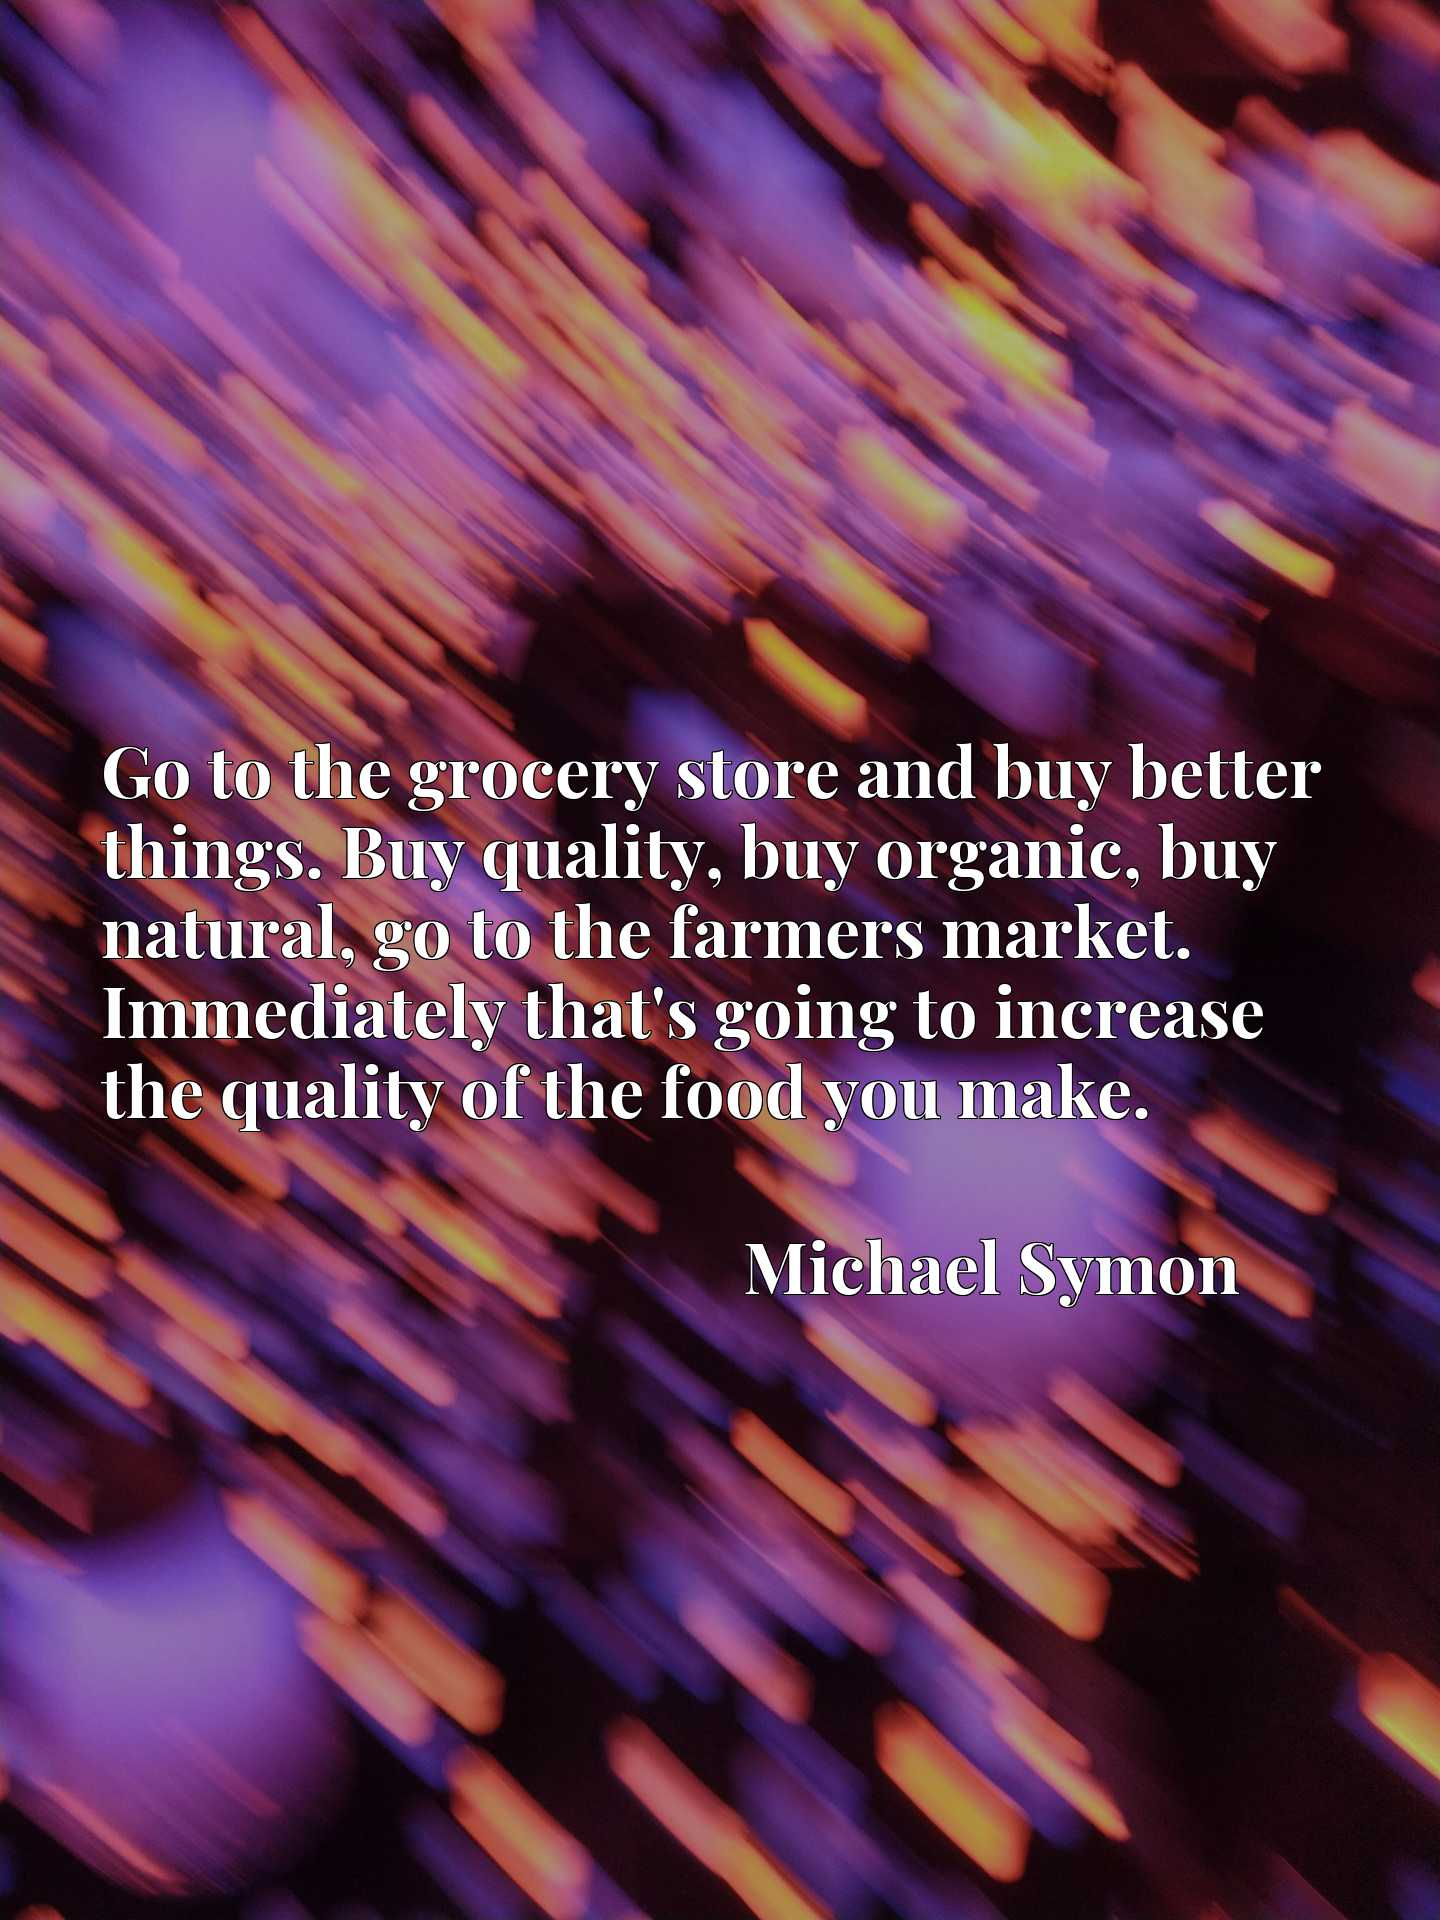 Go to the grocery store and buy better things. Buy quality, buy organic, buy natural, go to the farmers market. Immediately that's going to increase the quality of the food you make.